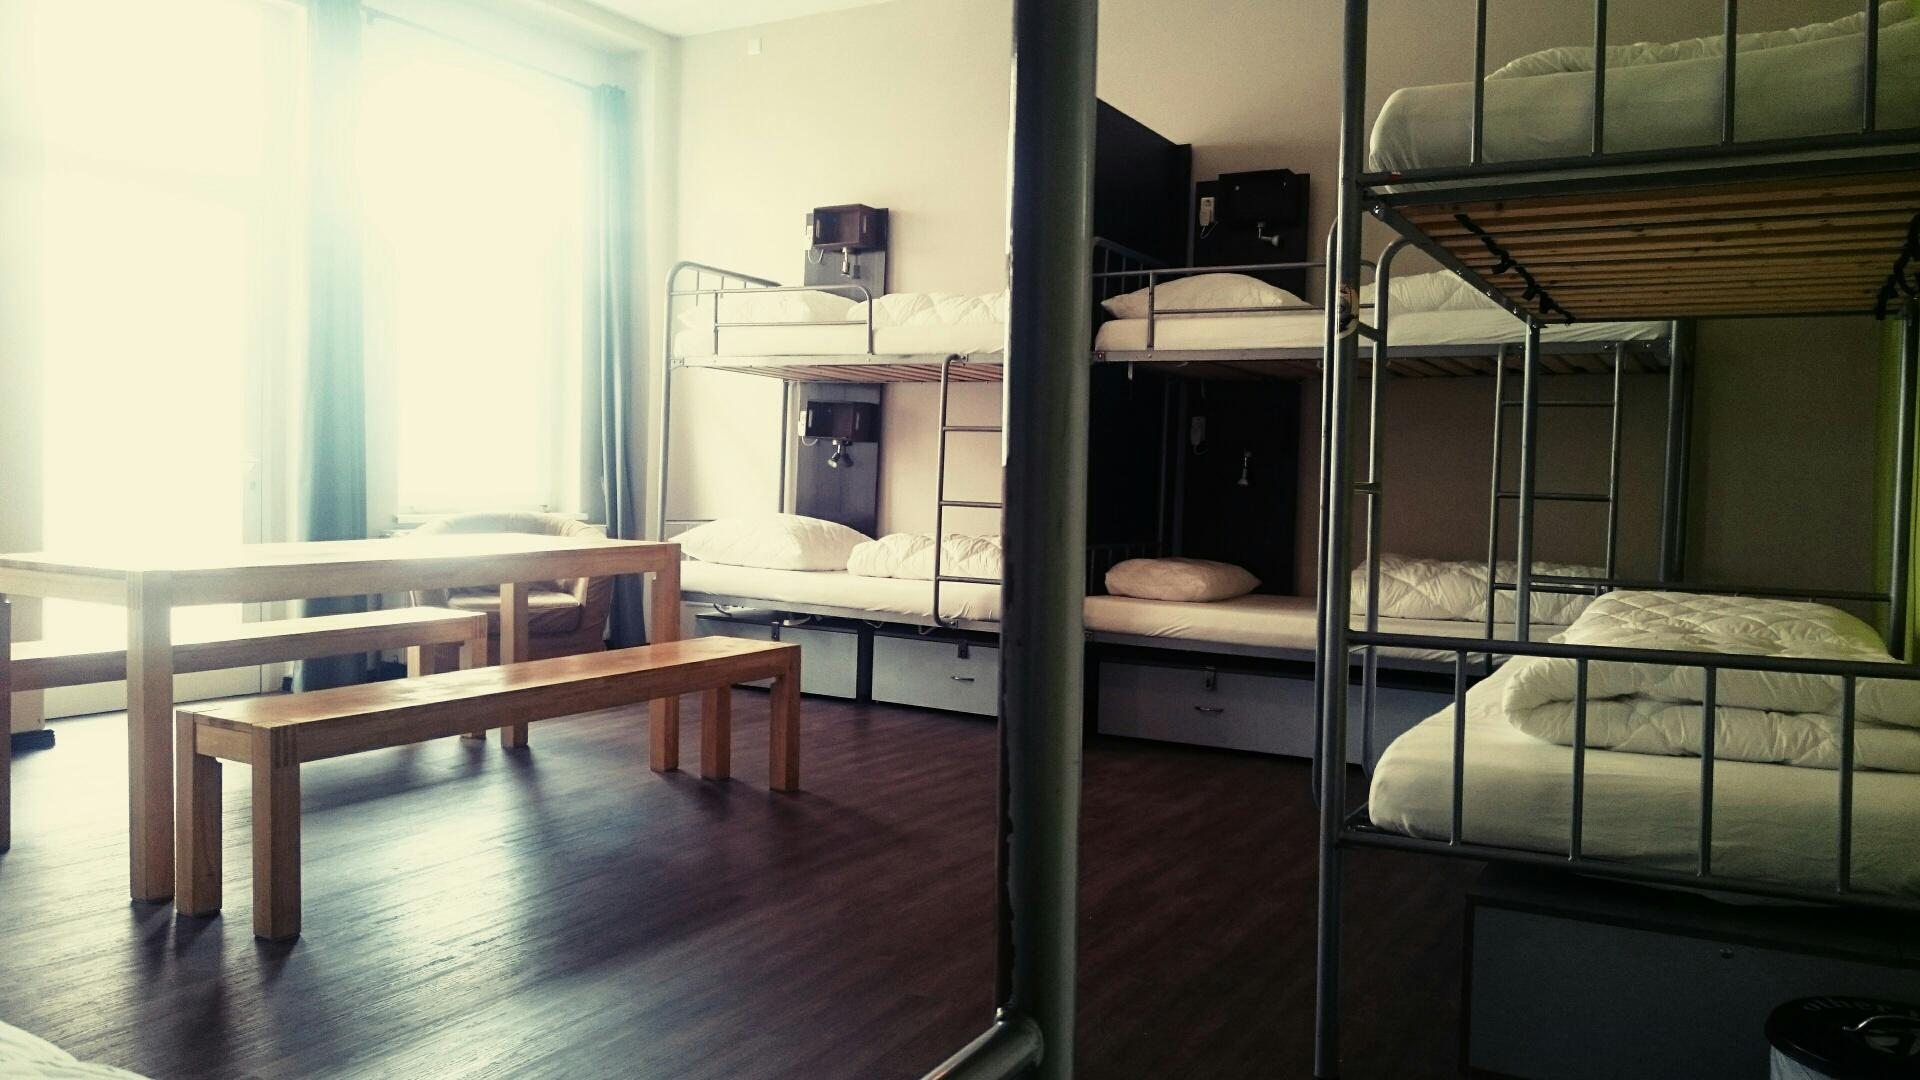 1 Person in 10-Bed Dormitory with Shared Bathroom - Mixed